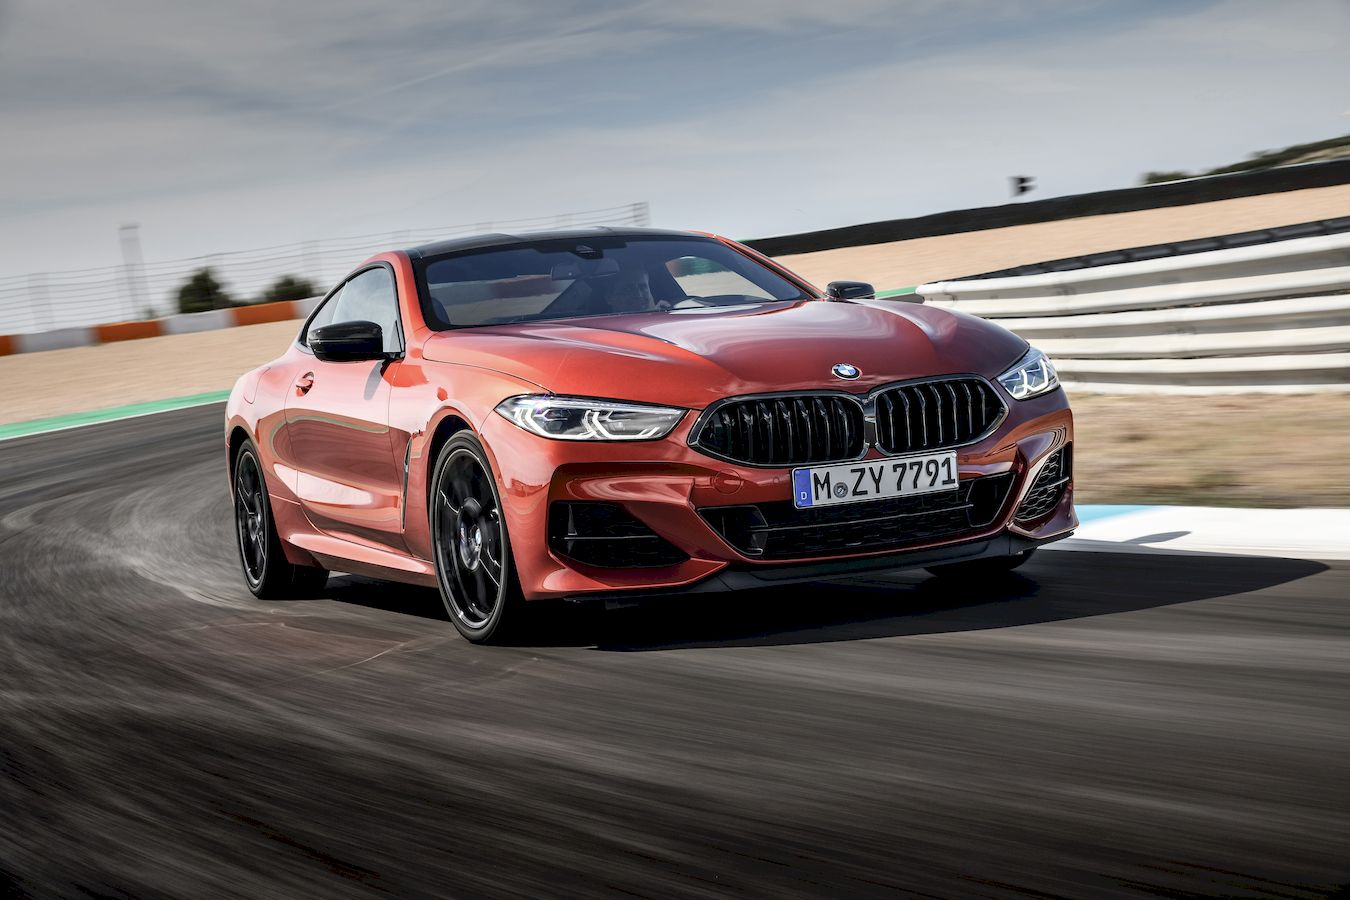 BMW is setting new standards for luxury with the M850i xDrive Coupe